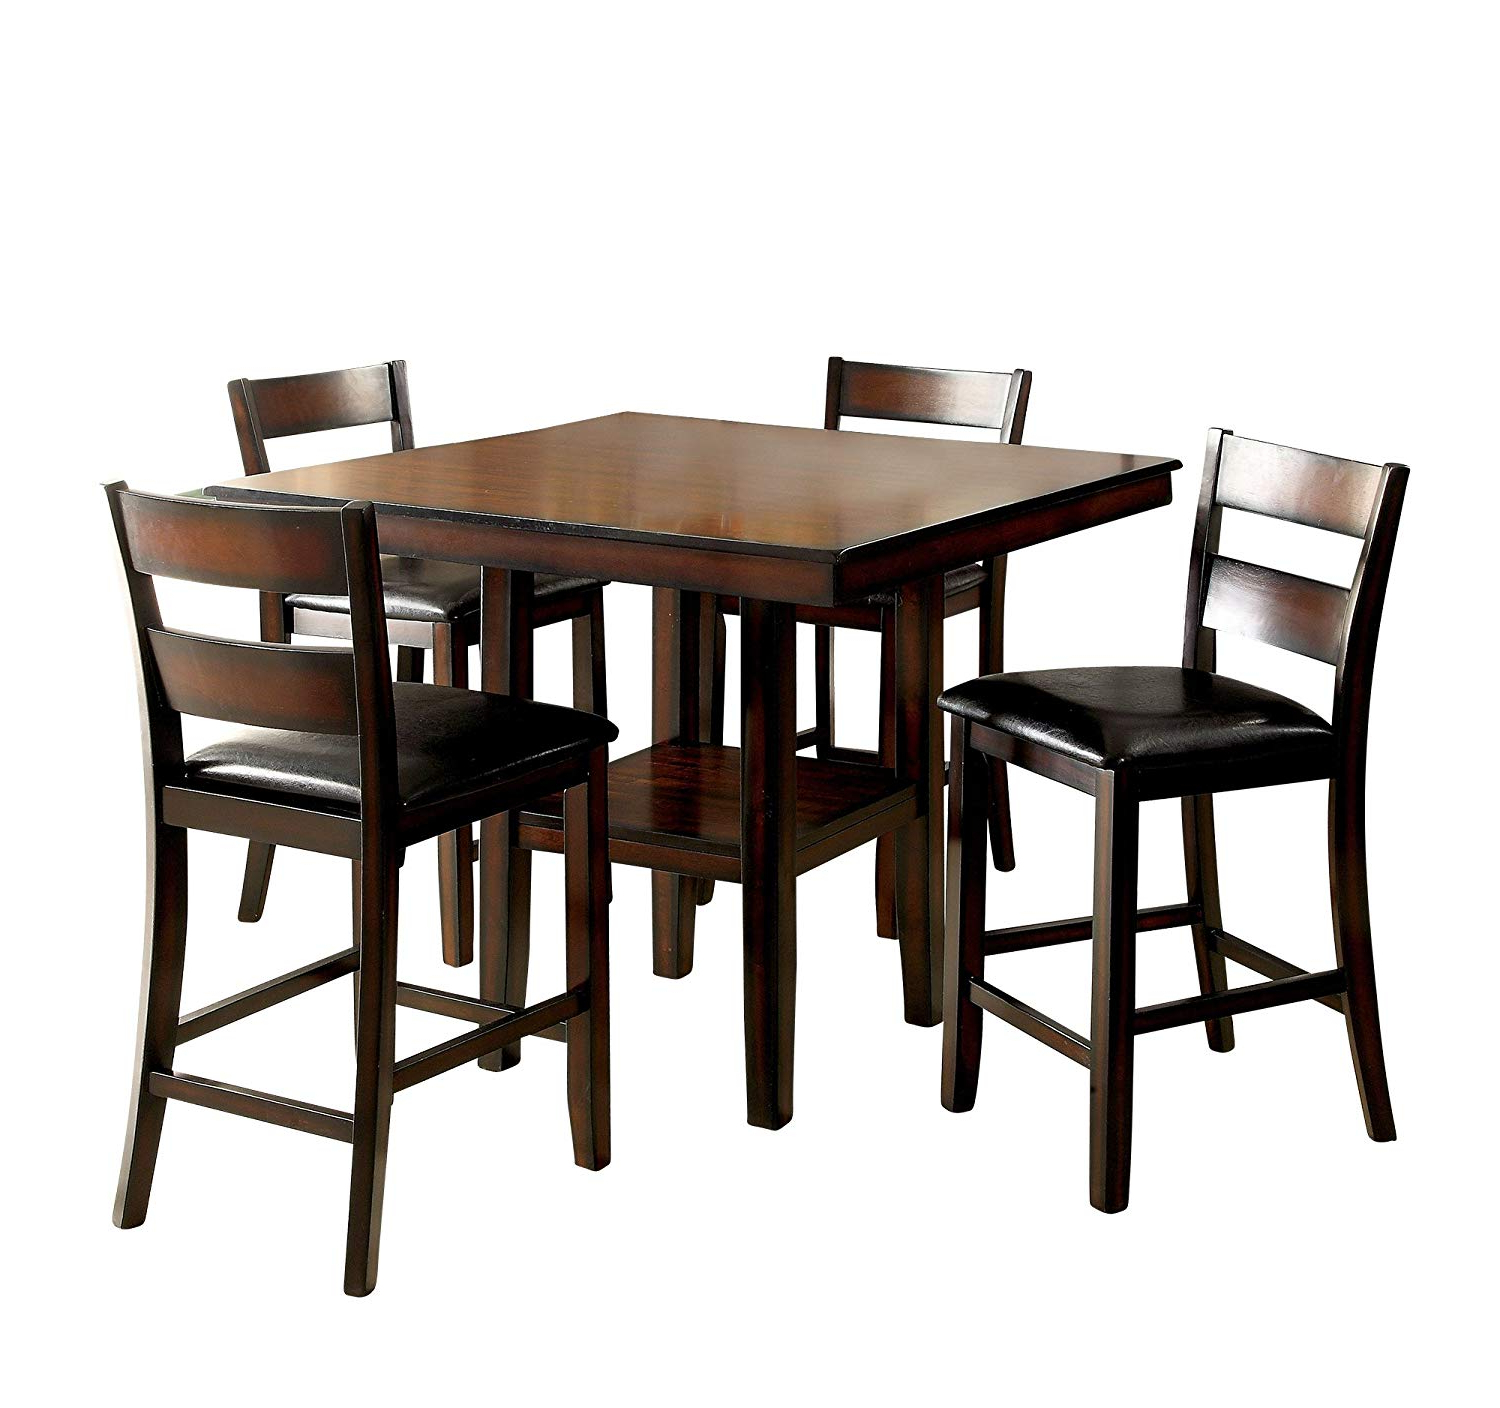 Current Homes: Inside + Out Idf 3351pt 5pk Jerrison Transitional 5 Piece Dining Set With Atwood Transitional Square Dining Tables (View 30 of 30)